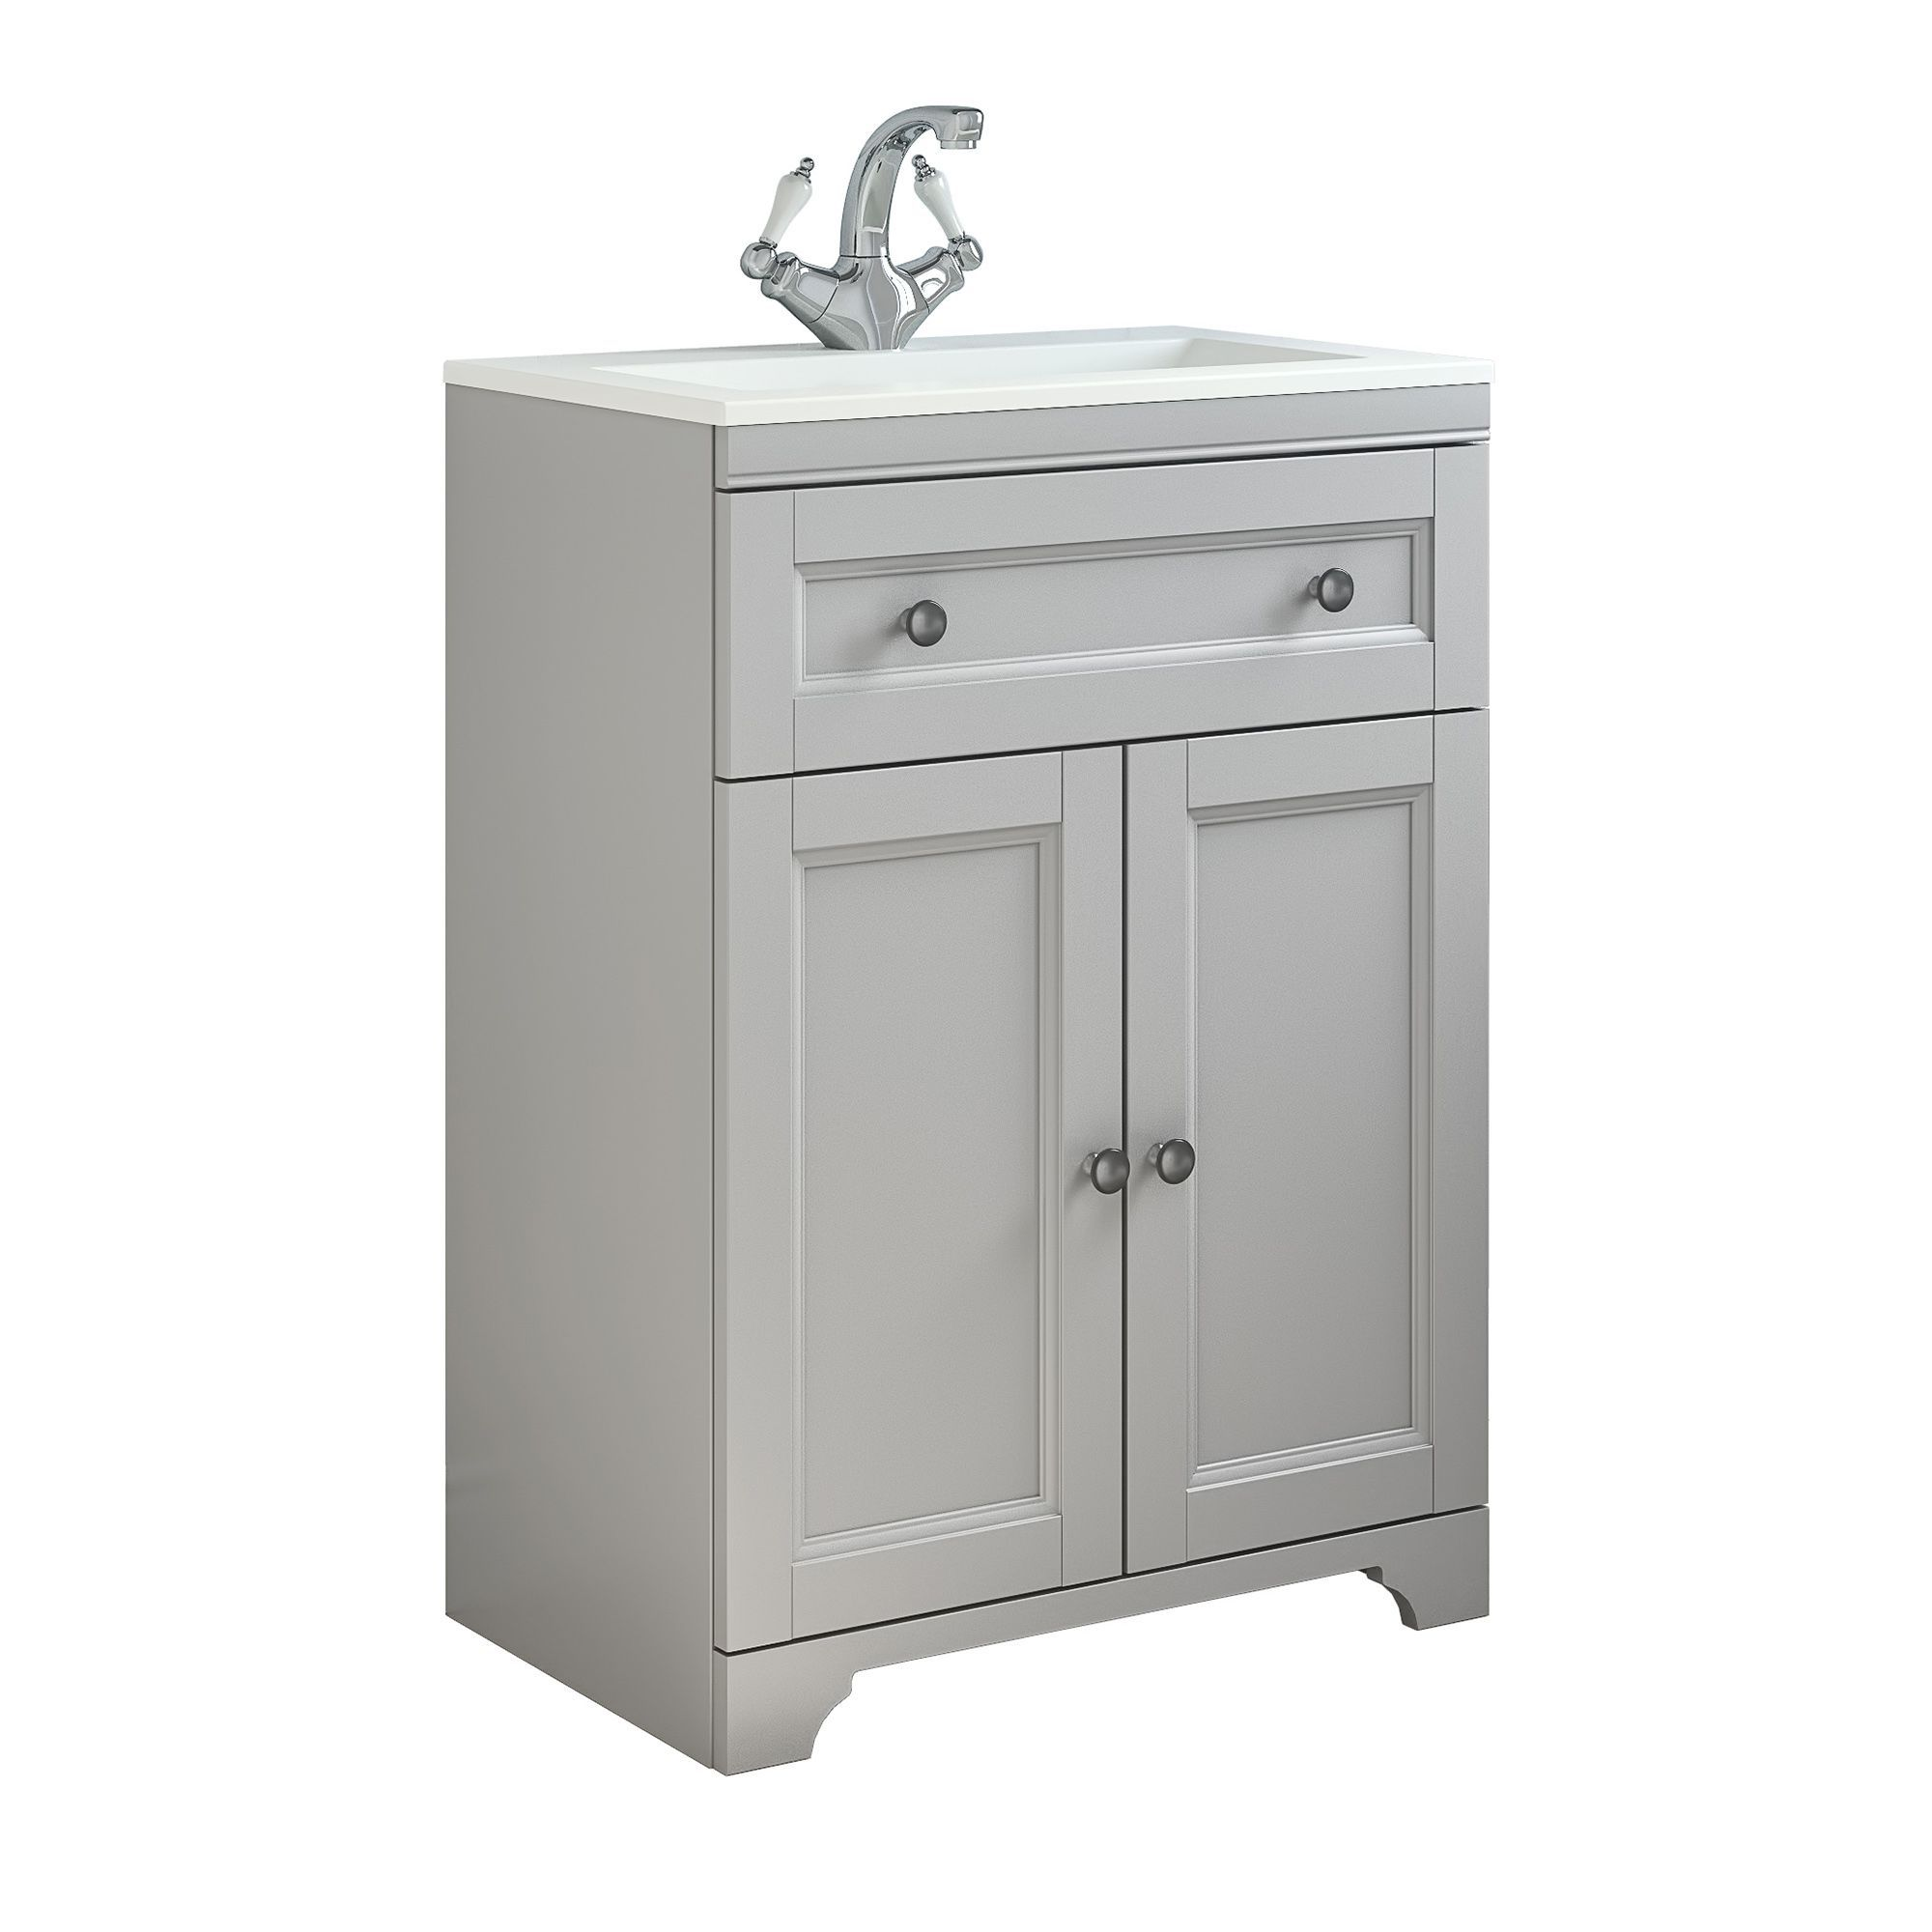 Vanity Unit Lights : Cooke & Lewis Chadleigh Matt Light Grey Vanity Unit & Basin Set Departments DIY at B&Q